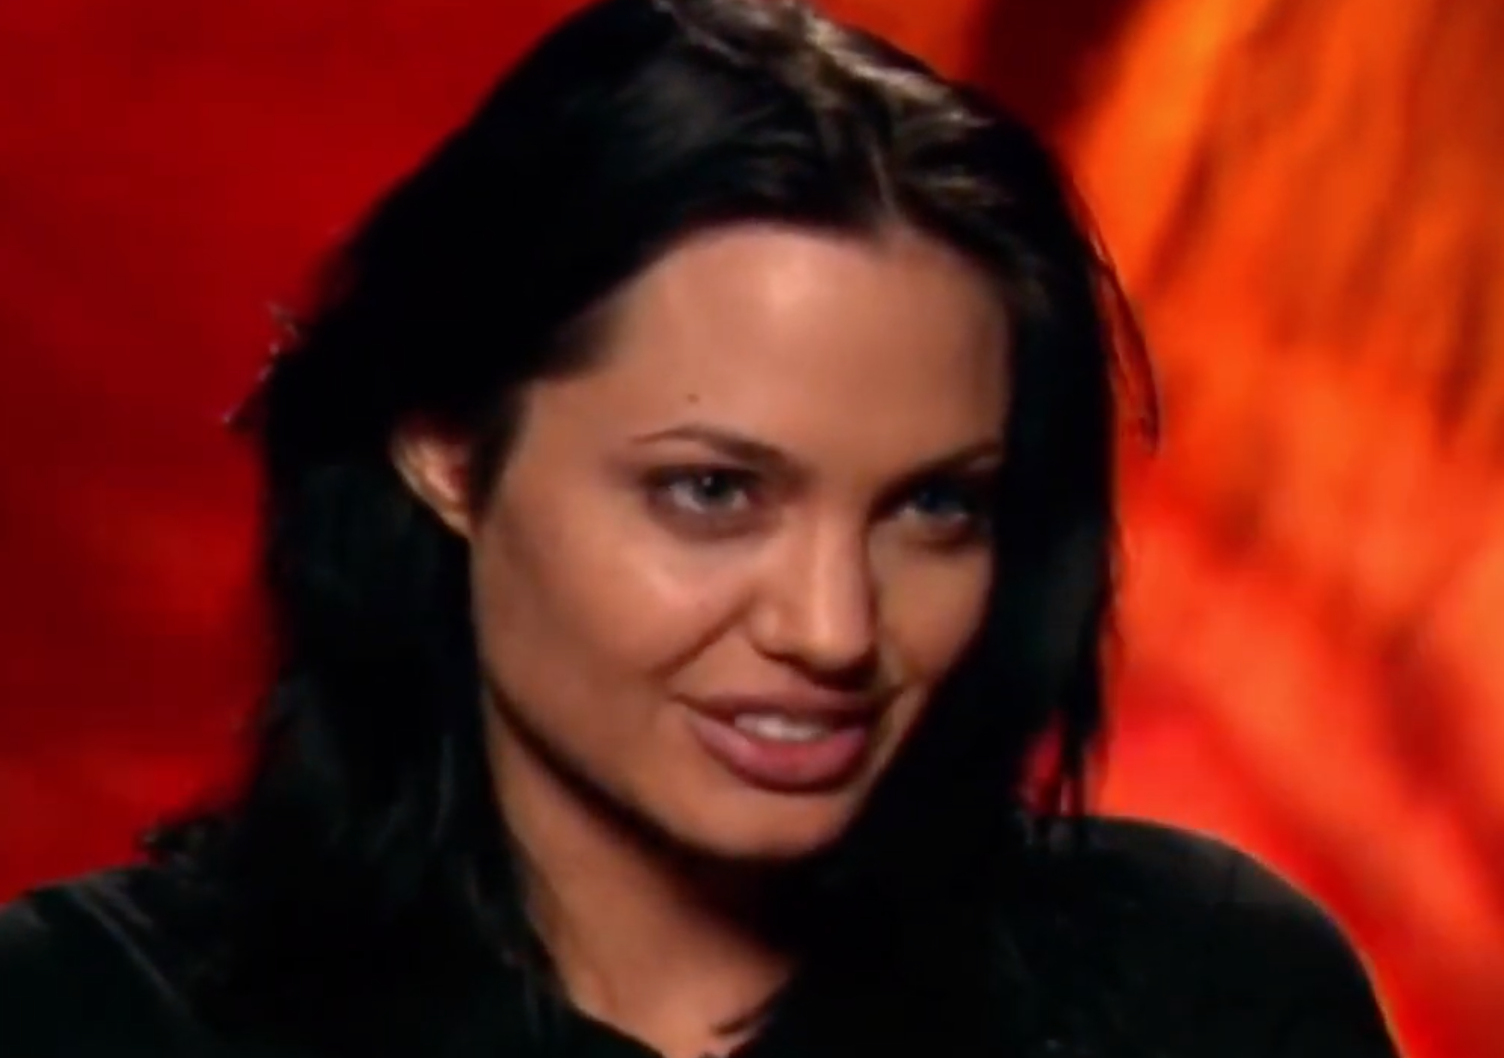 Screenshot 2021 03 25 at 14.41.23 e1616683349334 20 Fascinating Facts About Angelina Jolie